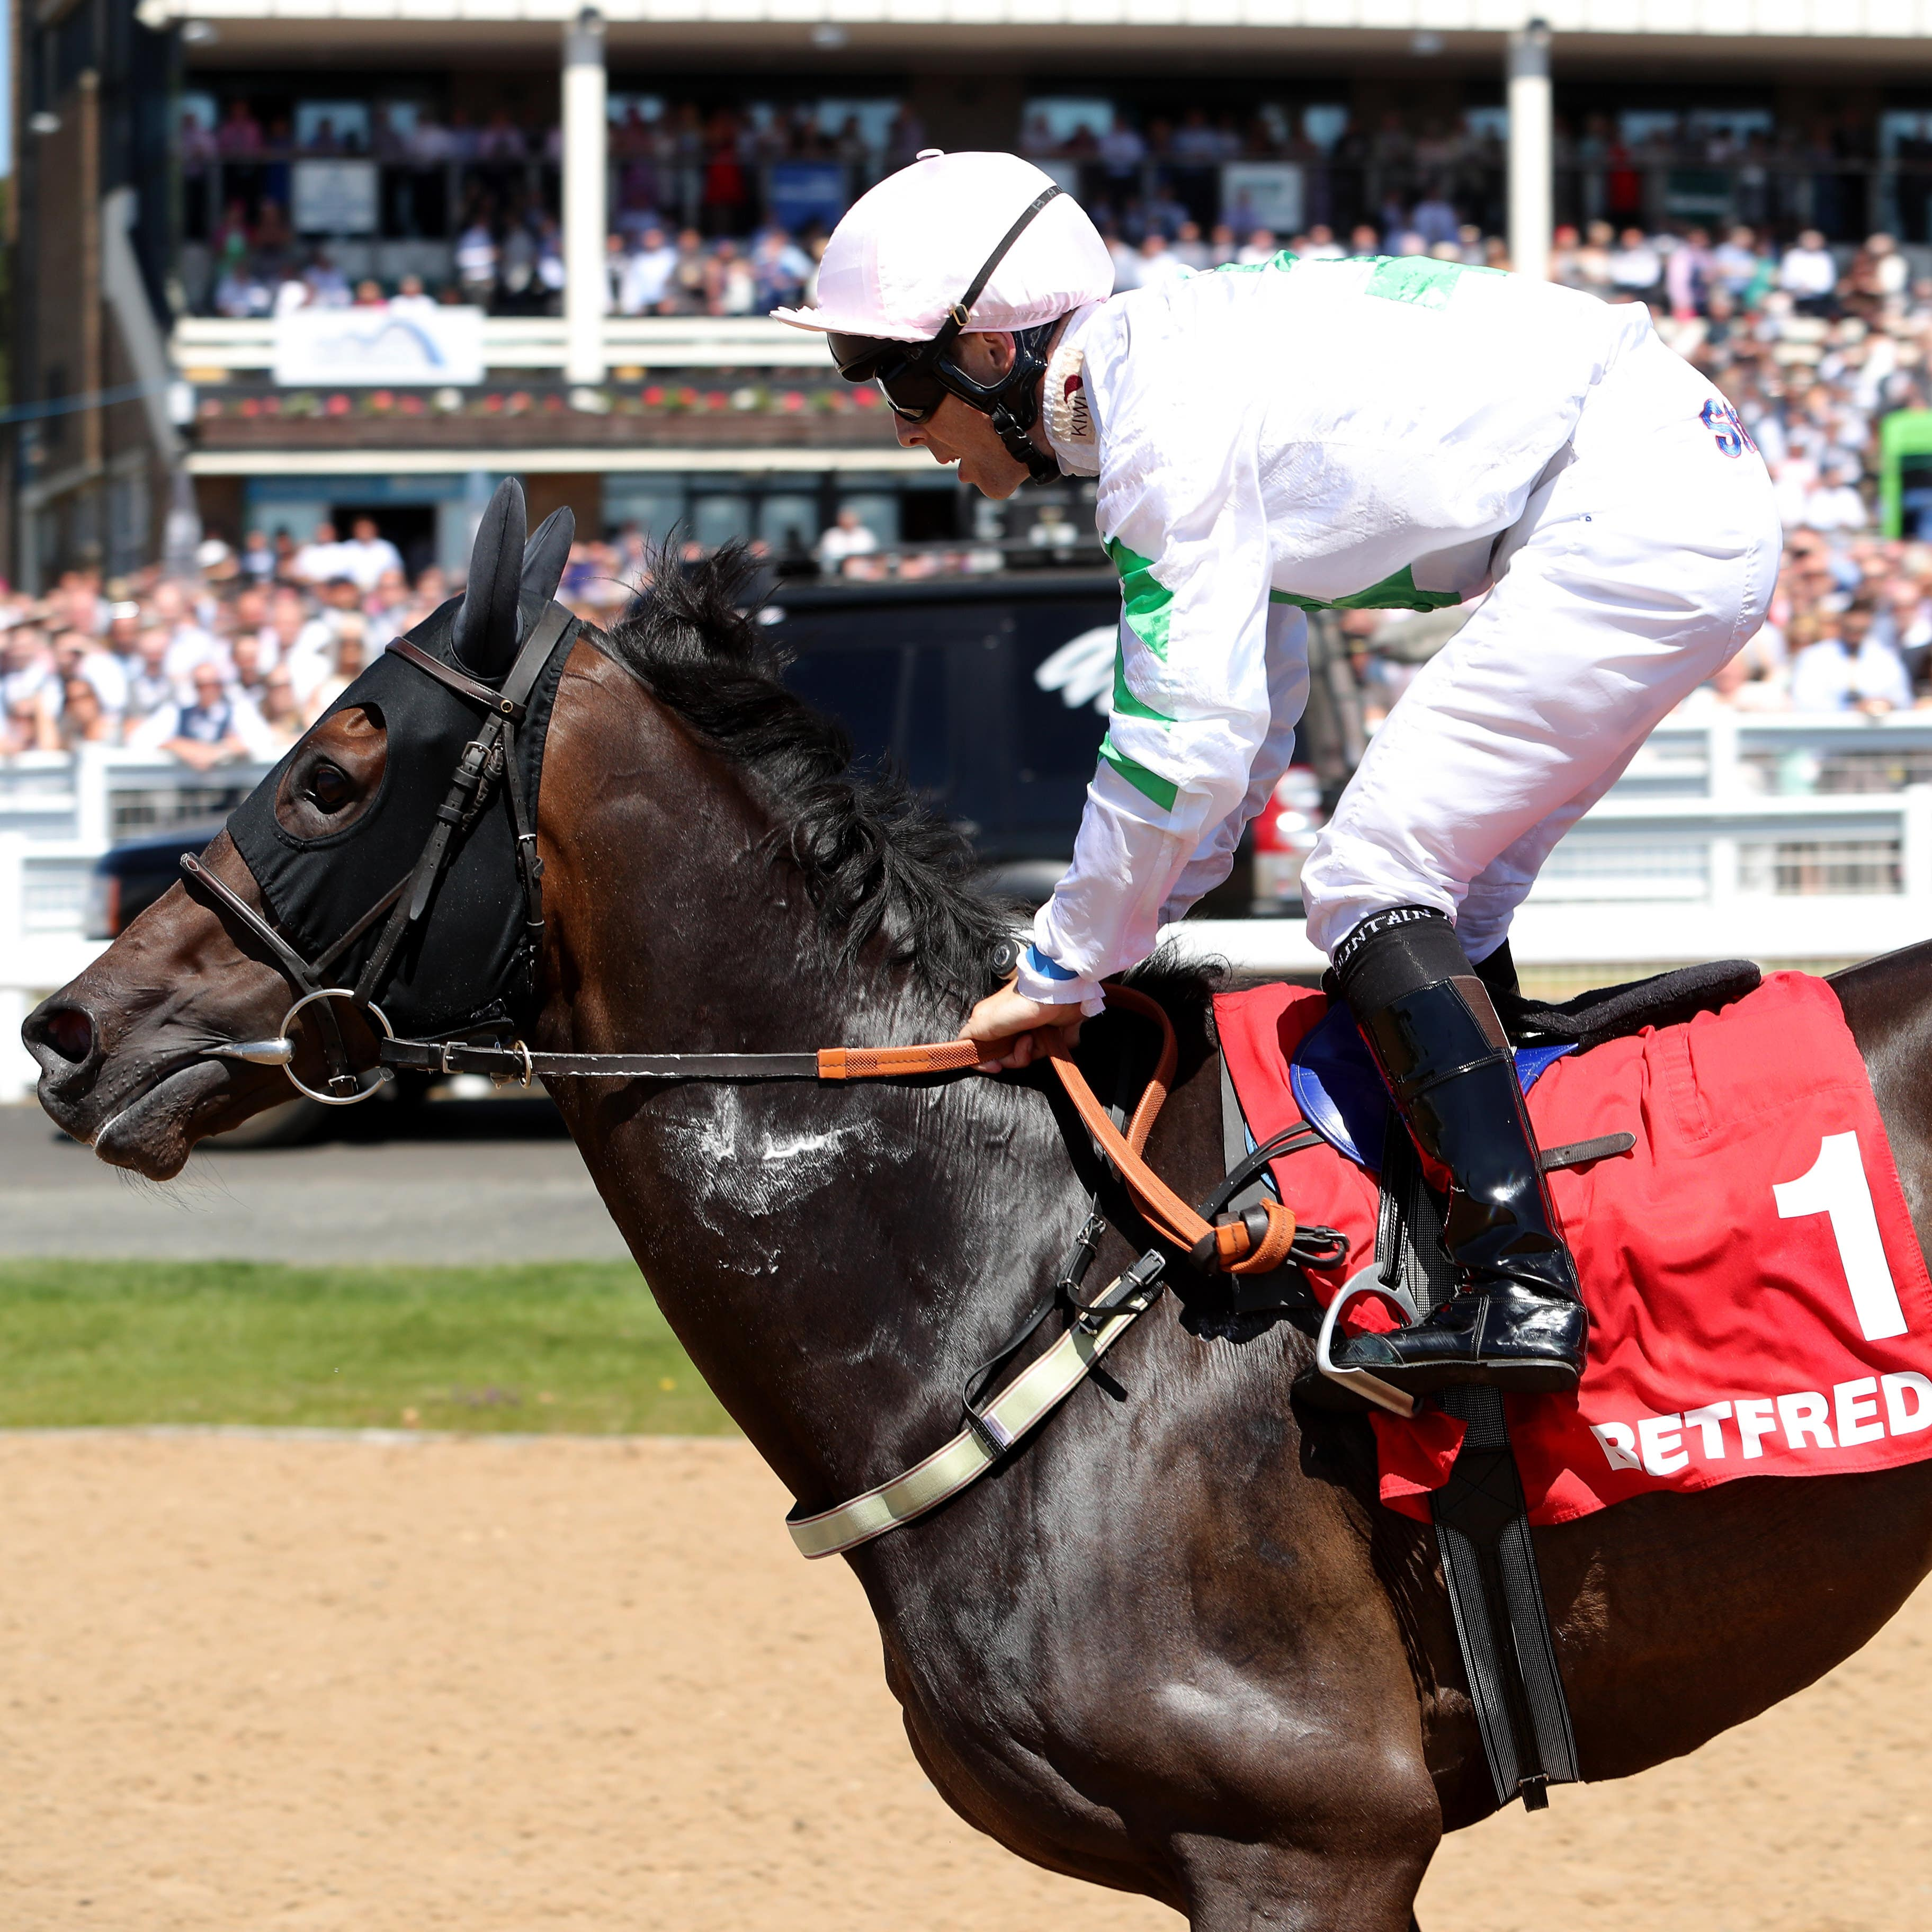 Above The Rest returned to winning ways in the Wulfruna Stakes at Wolverhampton